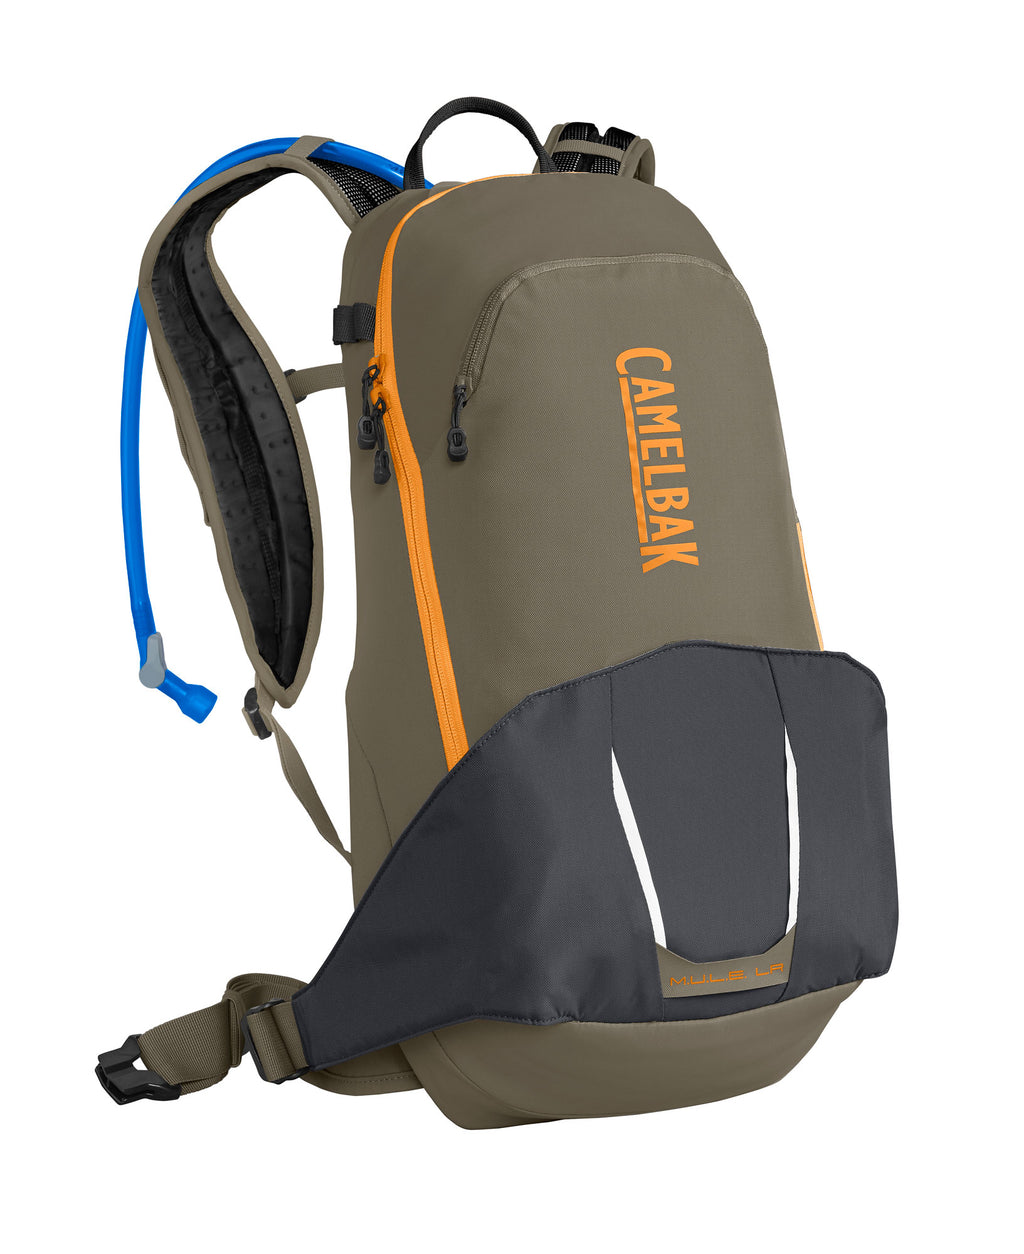 CamelBak M.U.L.E LR 15 100oz Hydration Pack Shadow Grey/Black